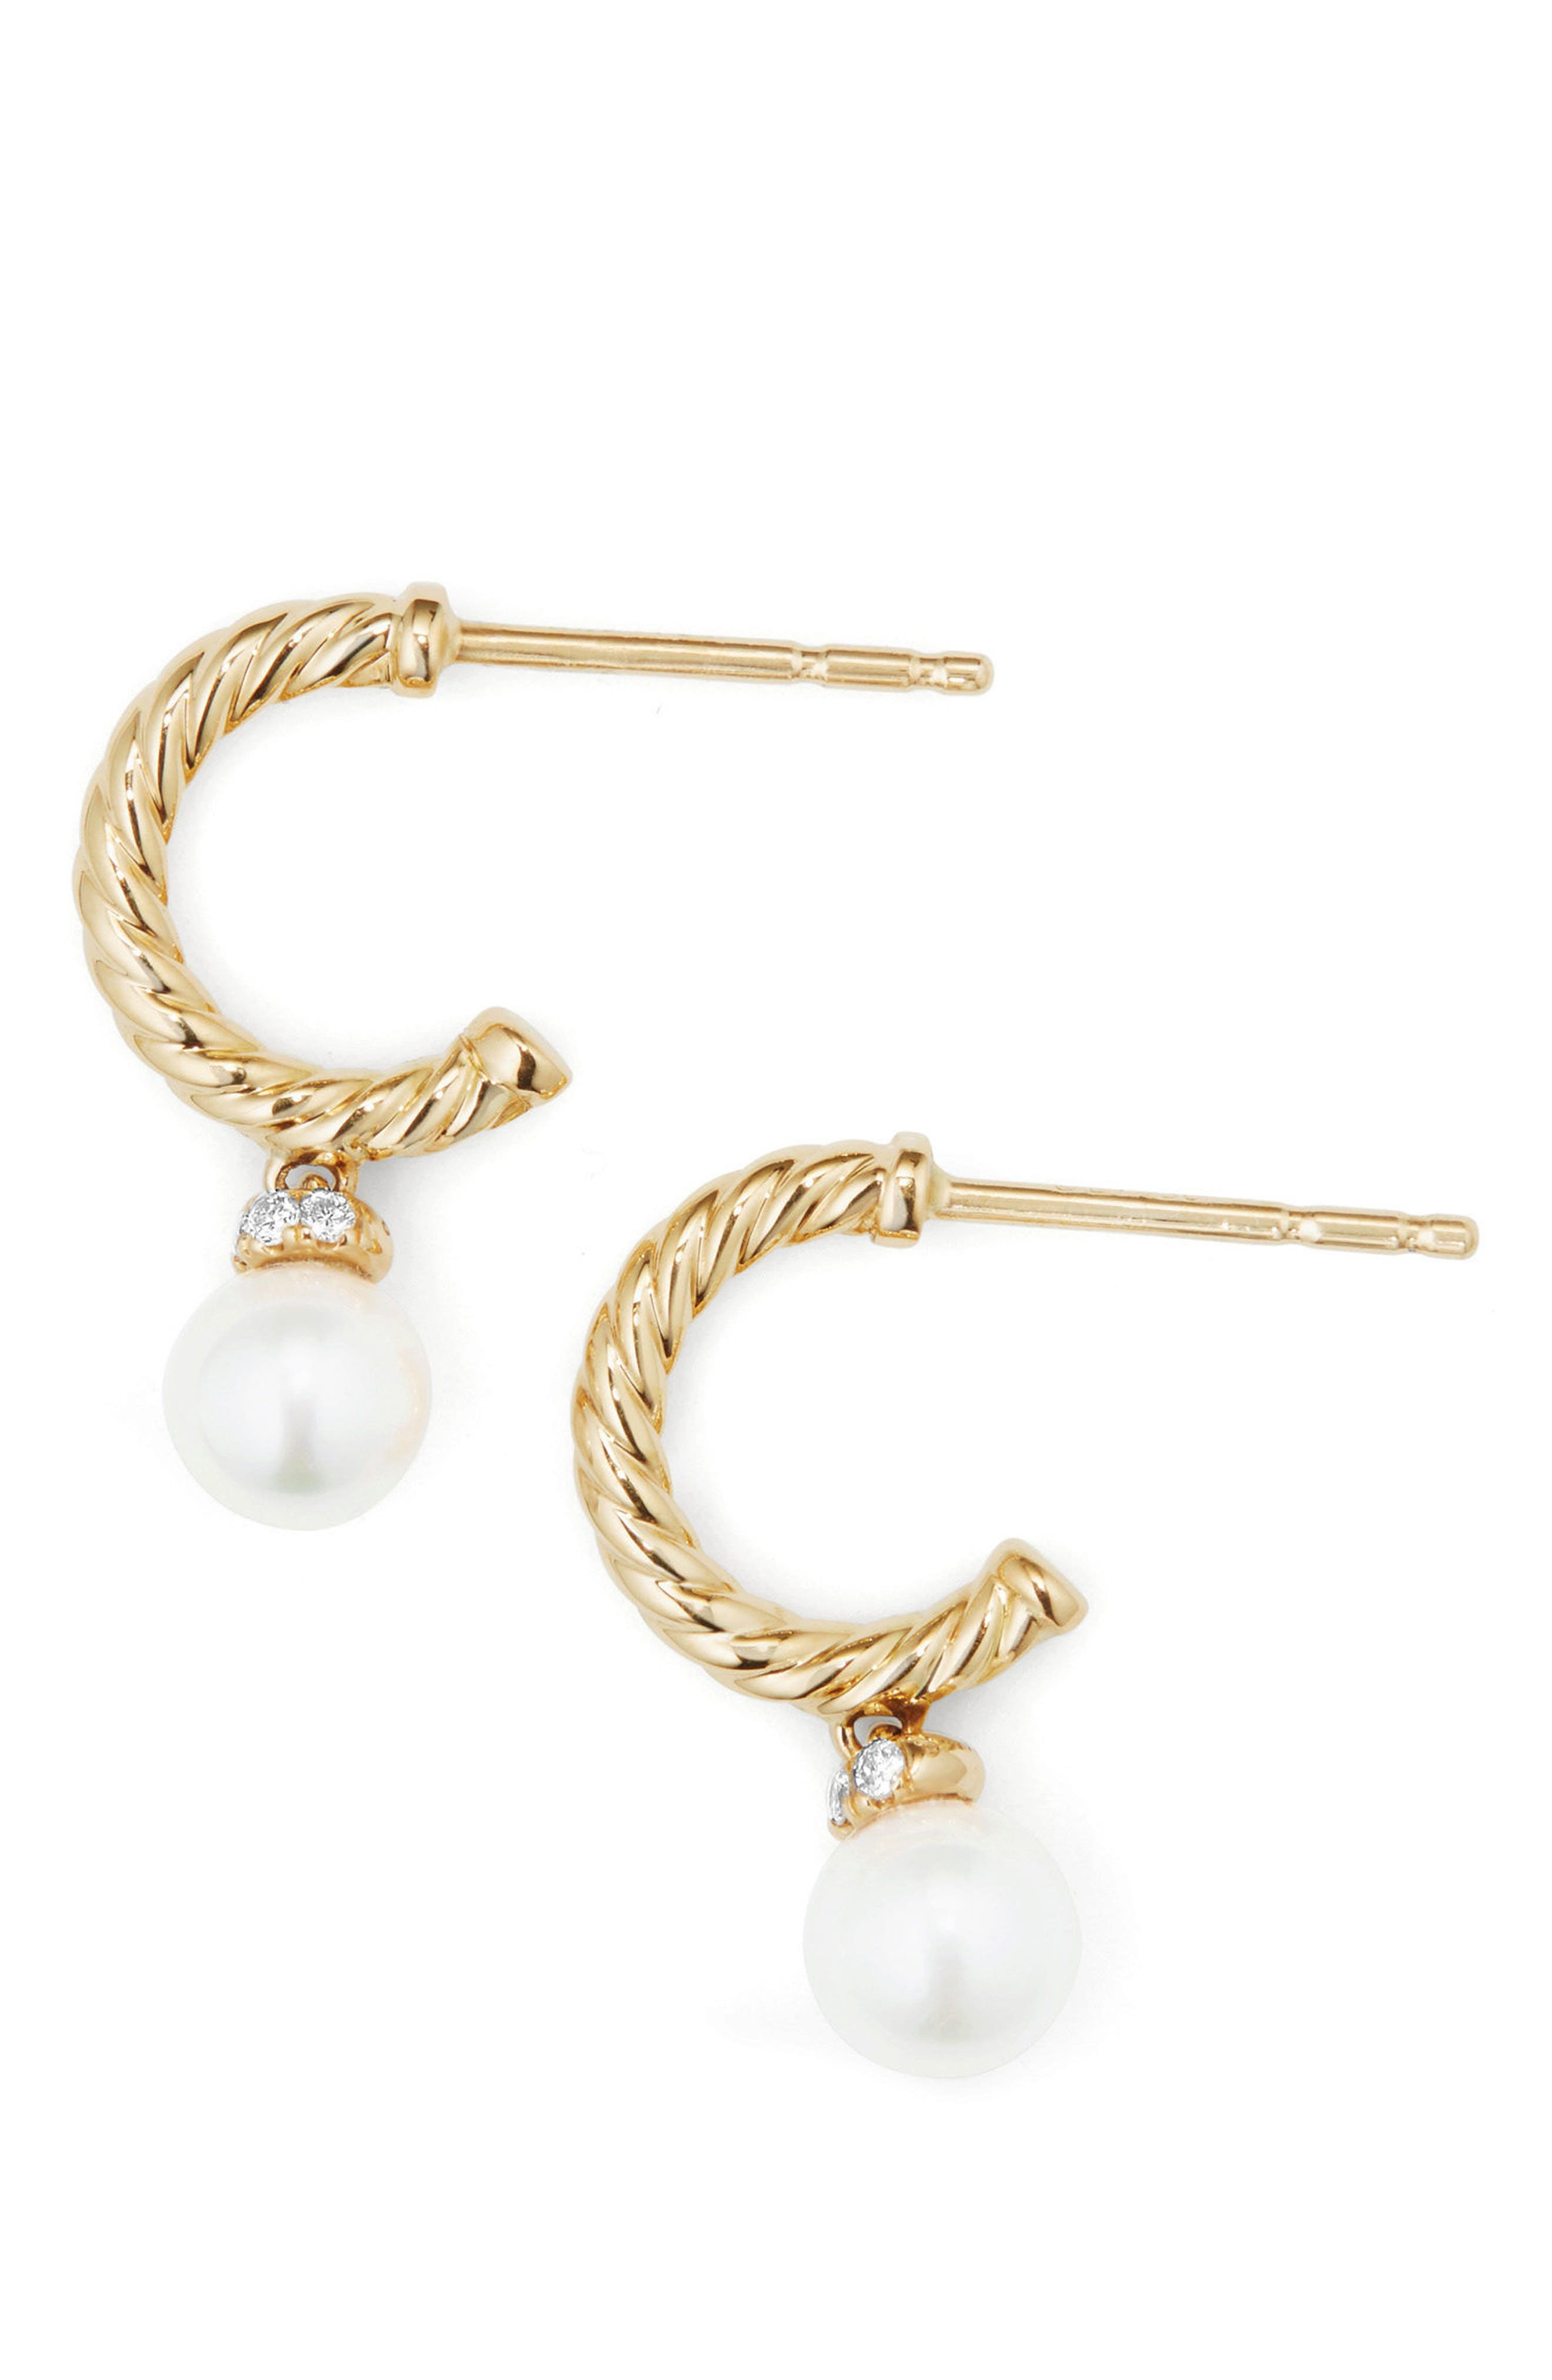 Solari Hoop Earrings with Diamonds & Pearls in 18K Gold,                             Main thumbnail 1, color,                             Yellow Gold/ Diamond/ Pearl